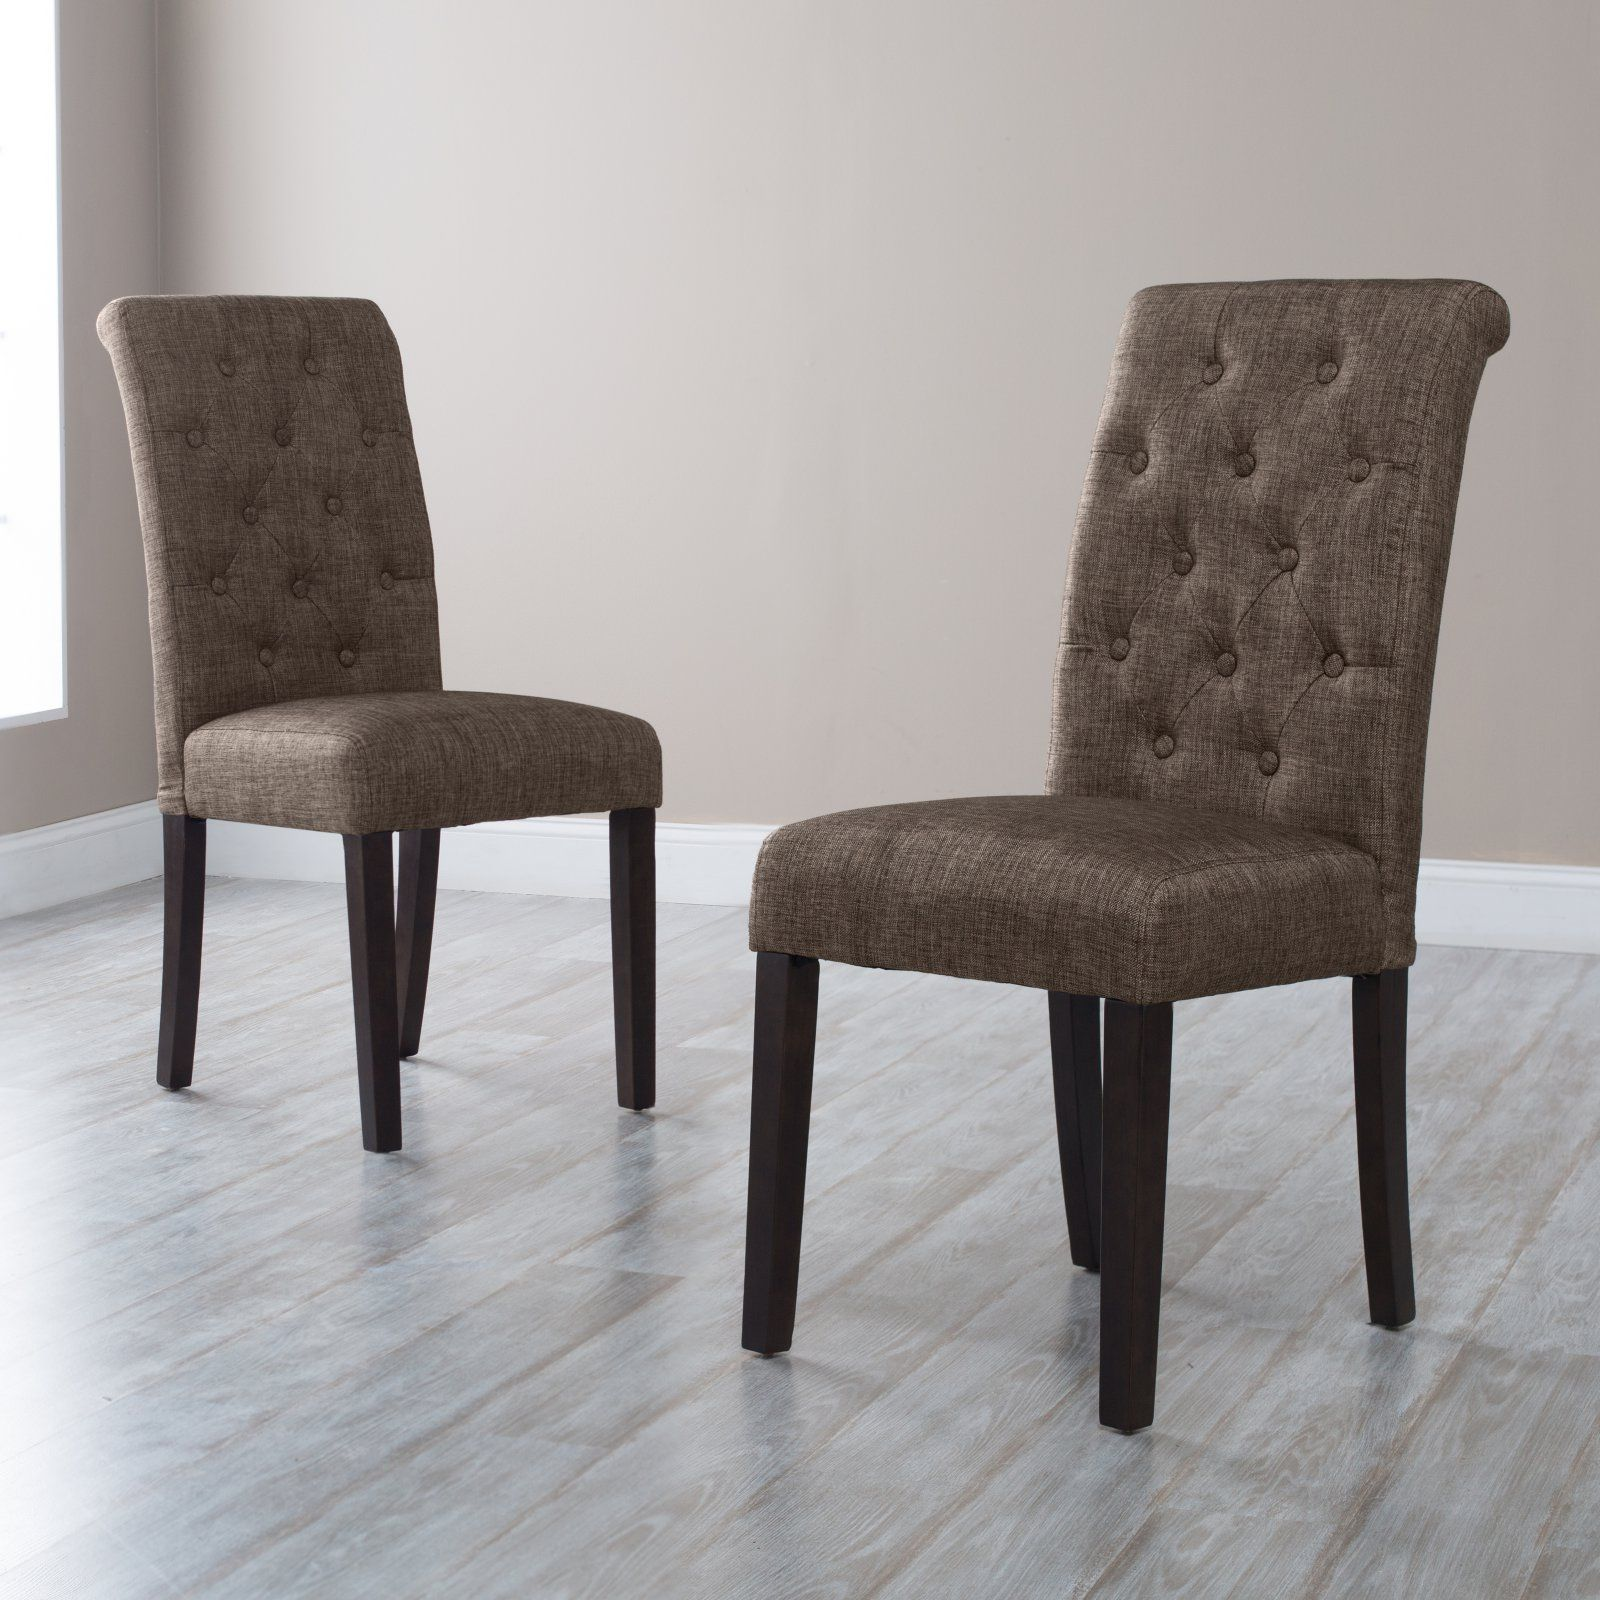 Morgana Tufted Parsons Dining Chair Set Of 2 Onyx Products In 2019 Tufted Dining Chairs Leather Dining Room Chairs Parsons Dining Chairs